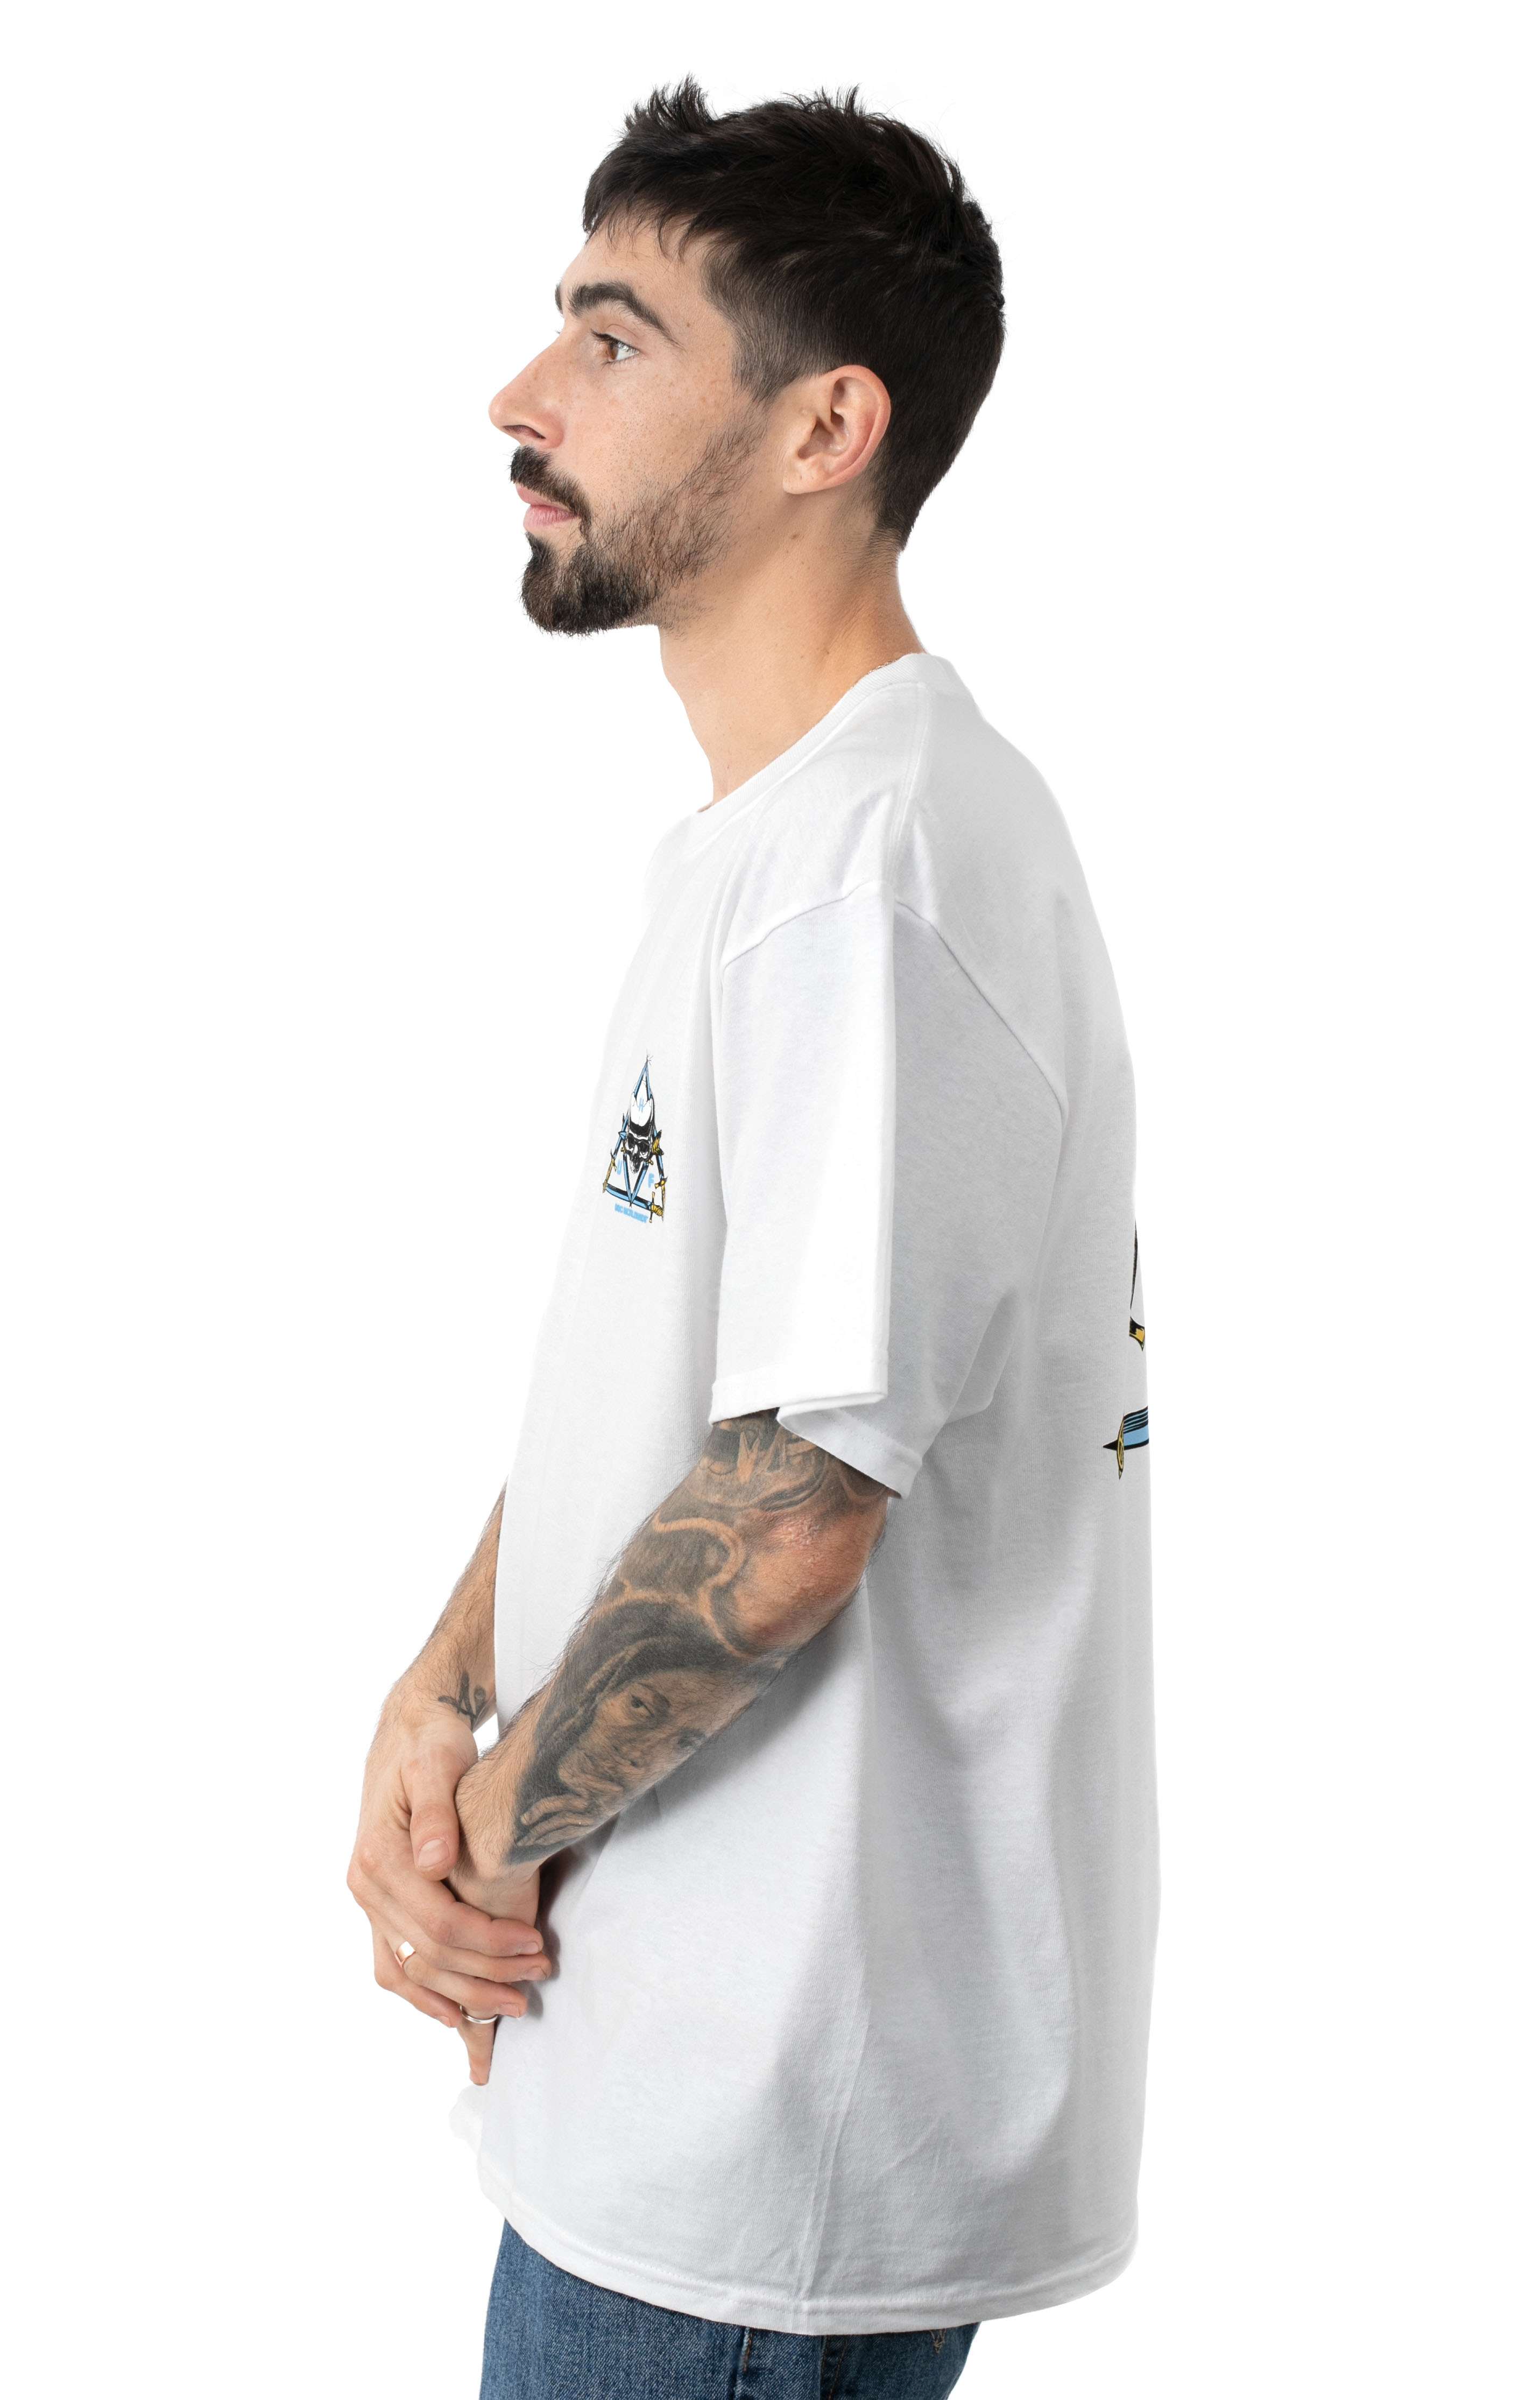 Blvd T-Shirt - White  3